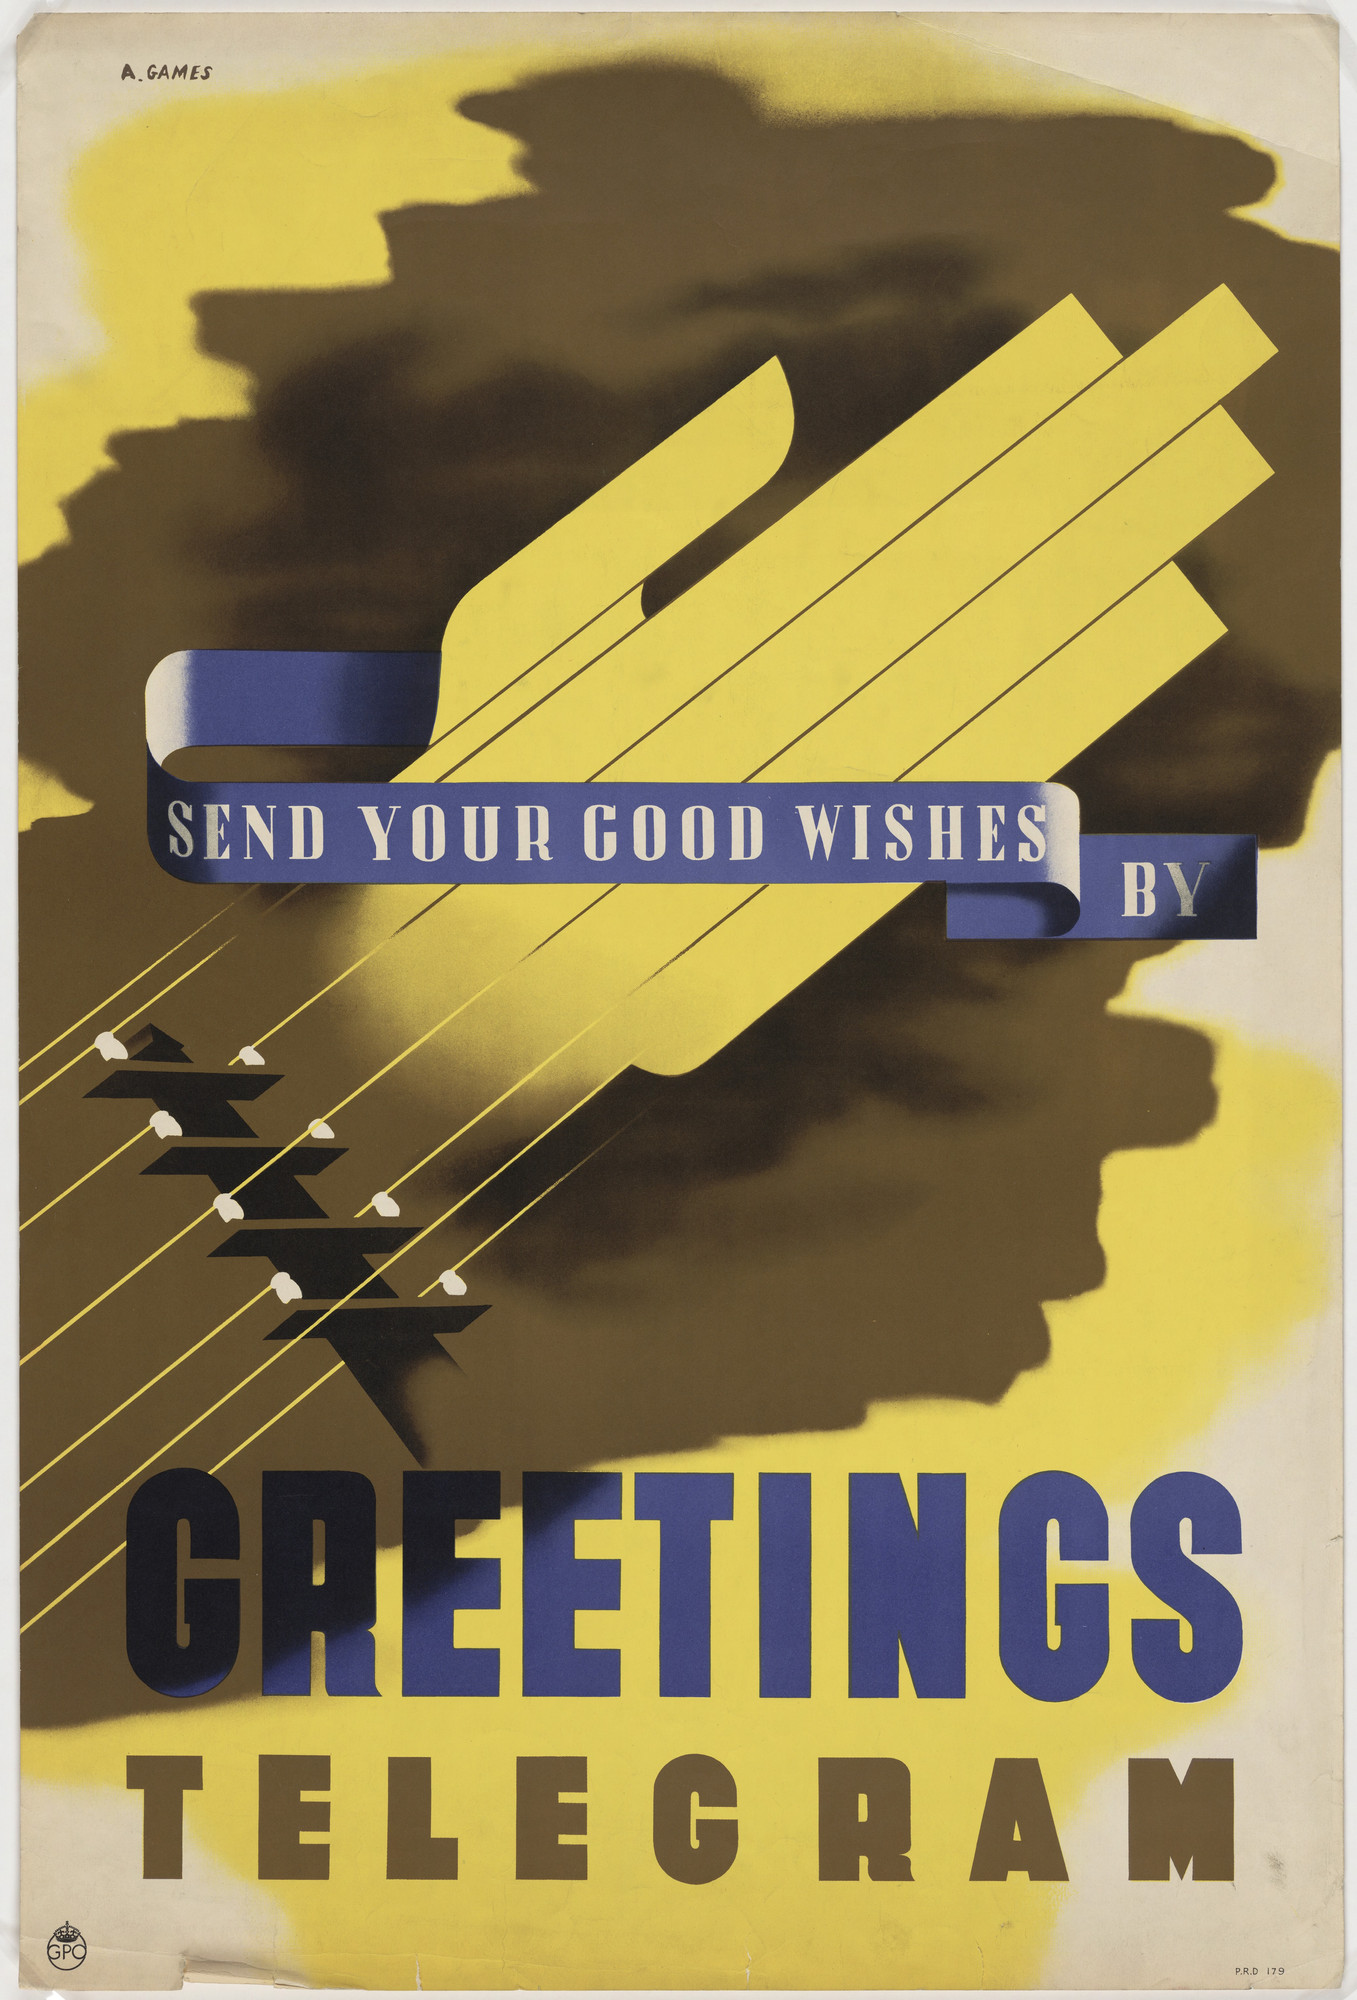 Abram Games Send Your Good Wishes By Greetings Telegram C 1939 43